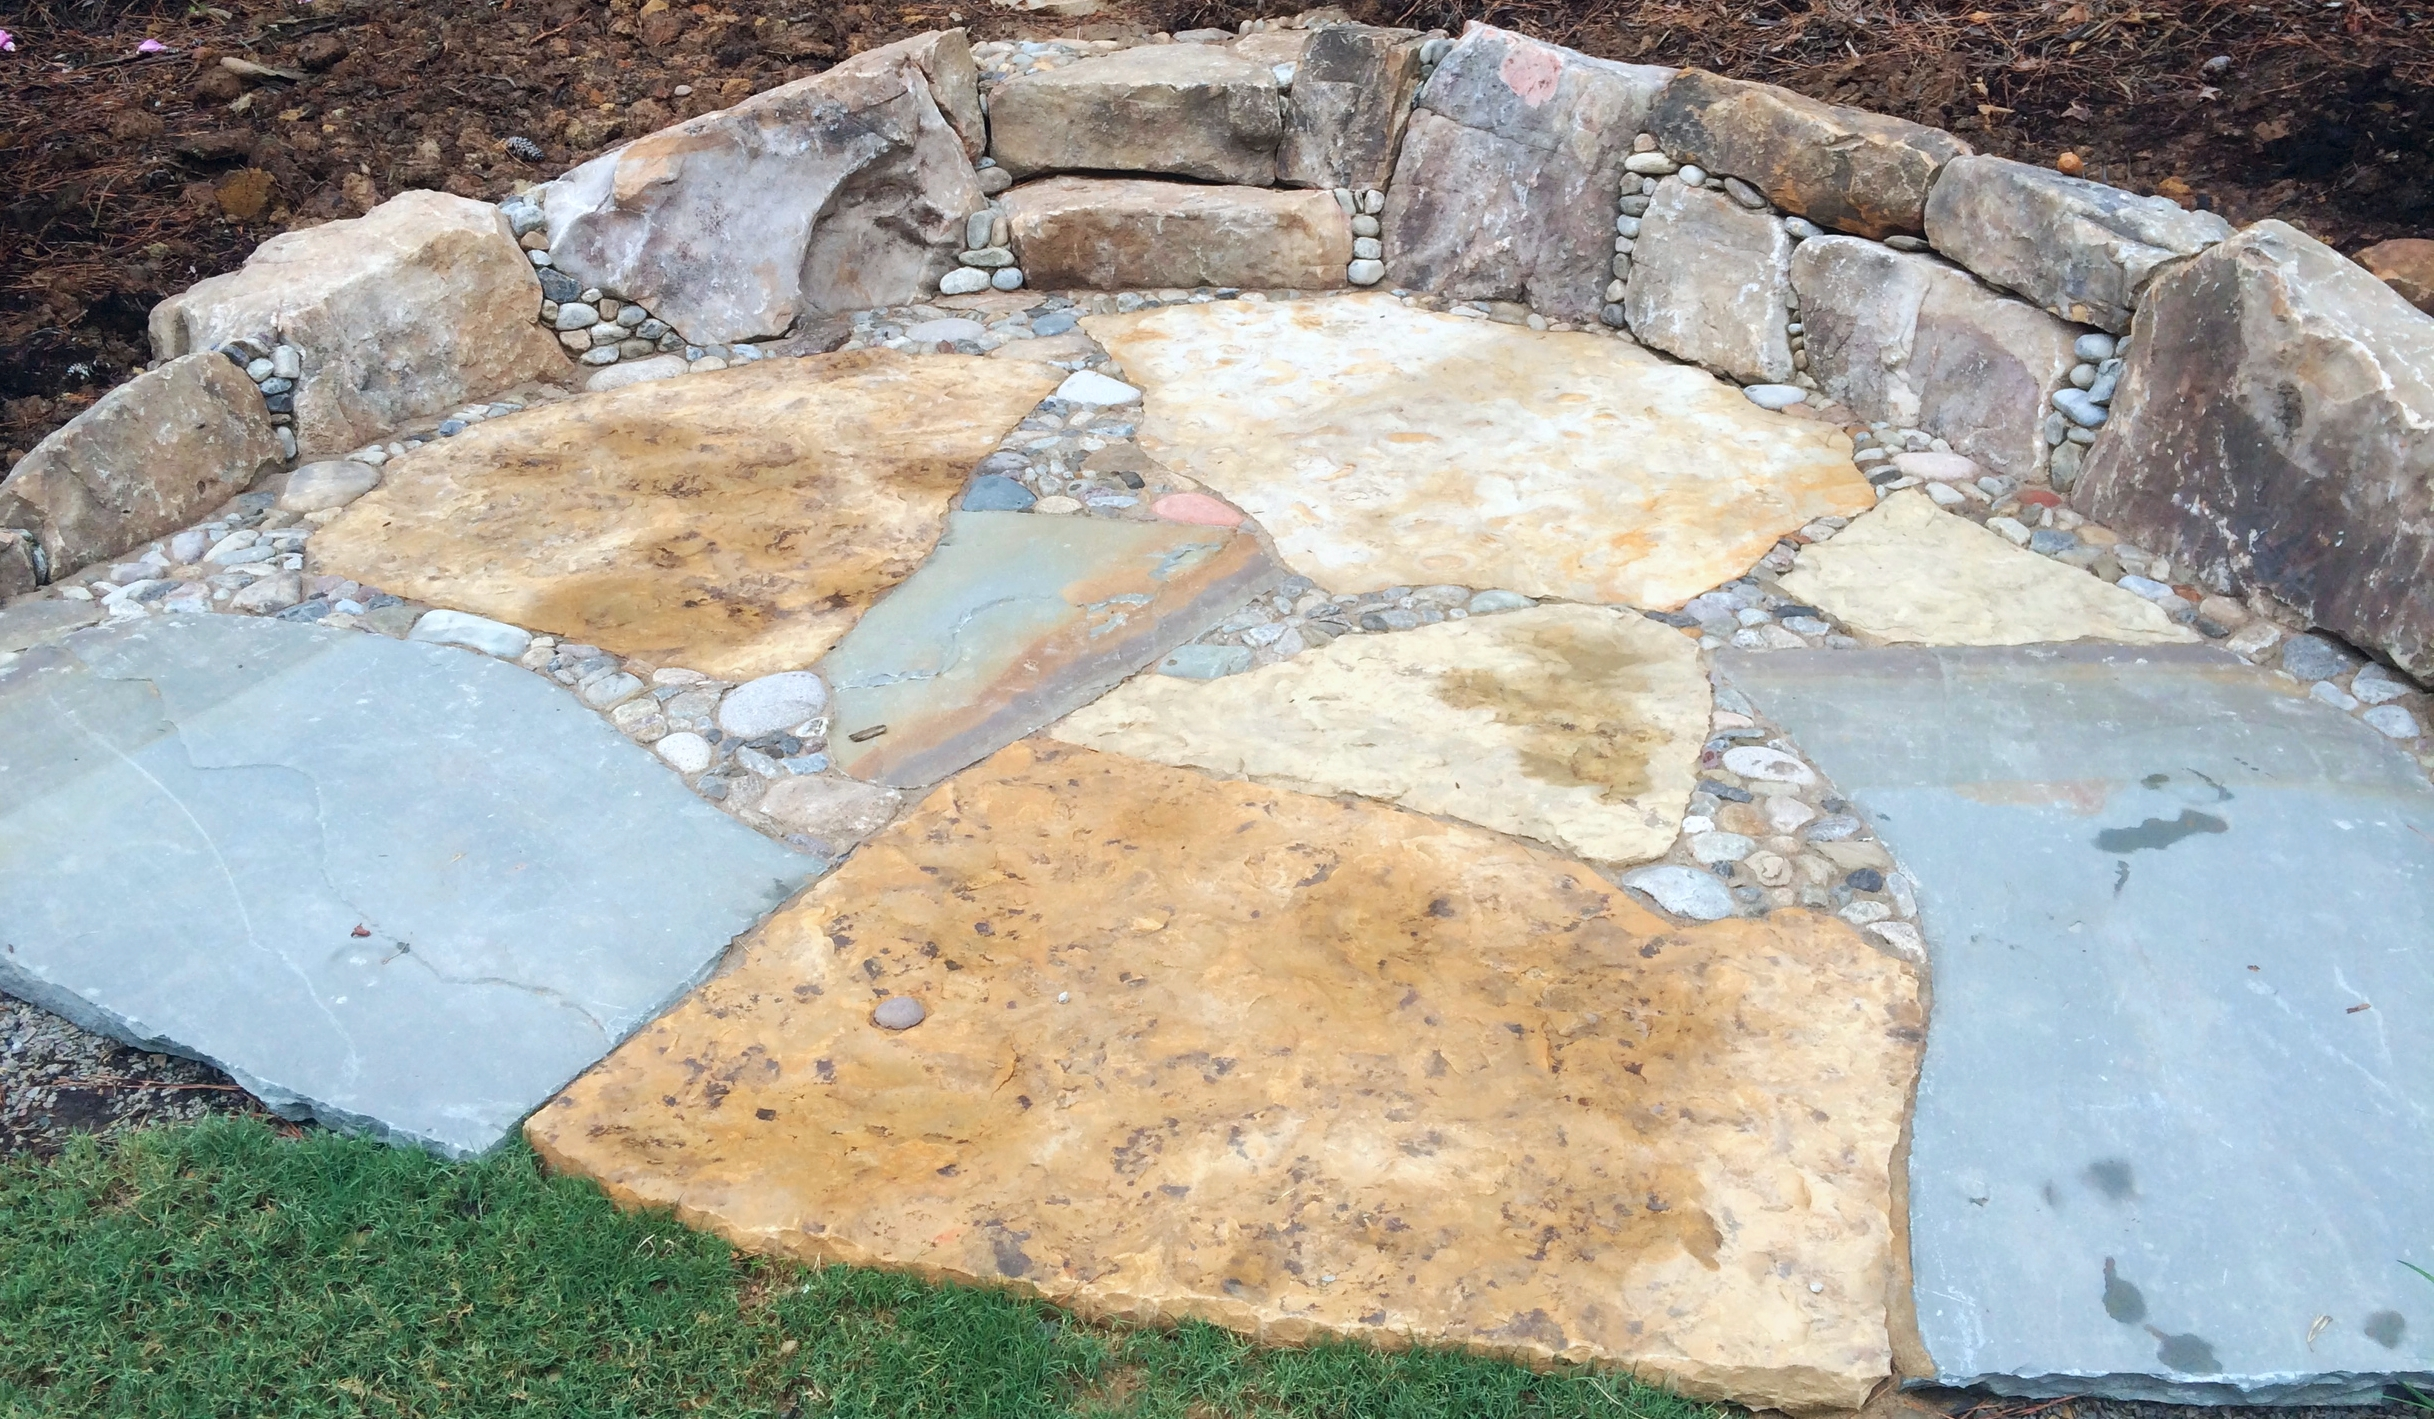 Pebbles enhance large boulders and flagstone to create a backyard sitting area